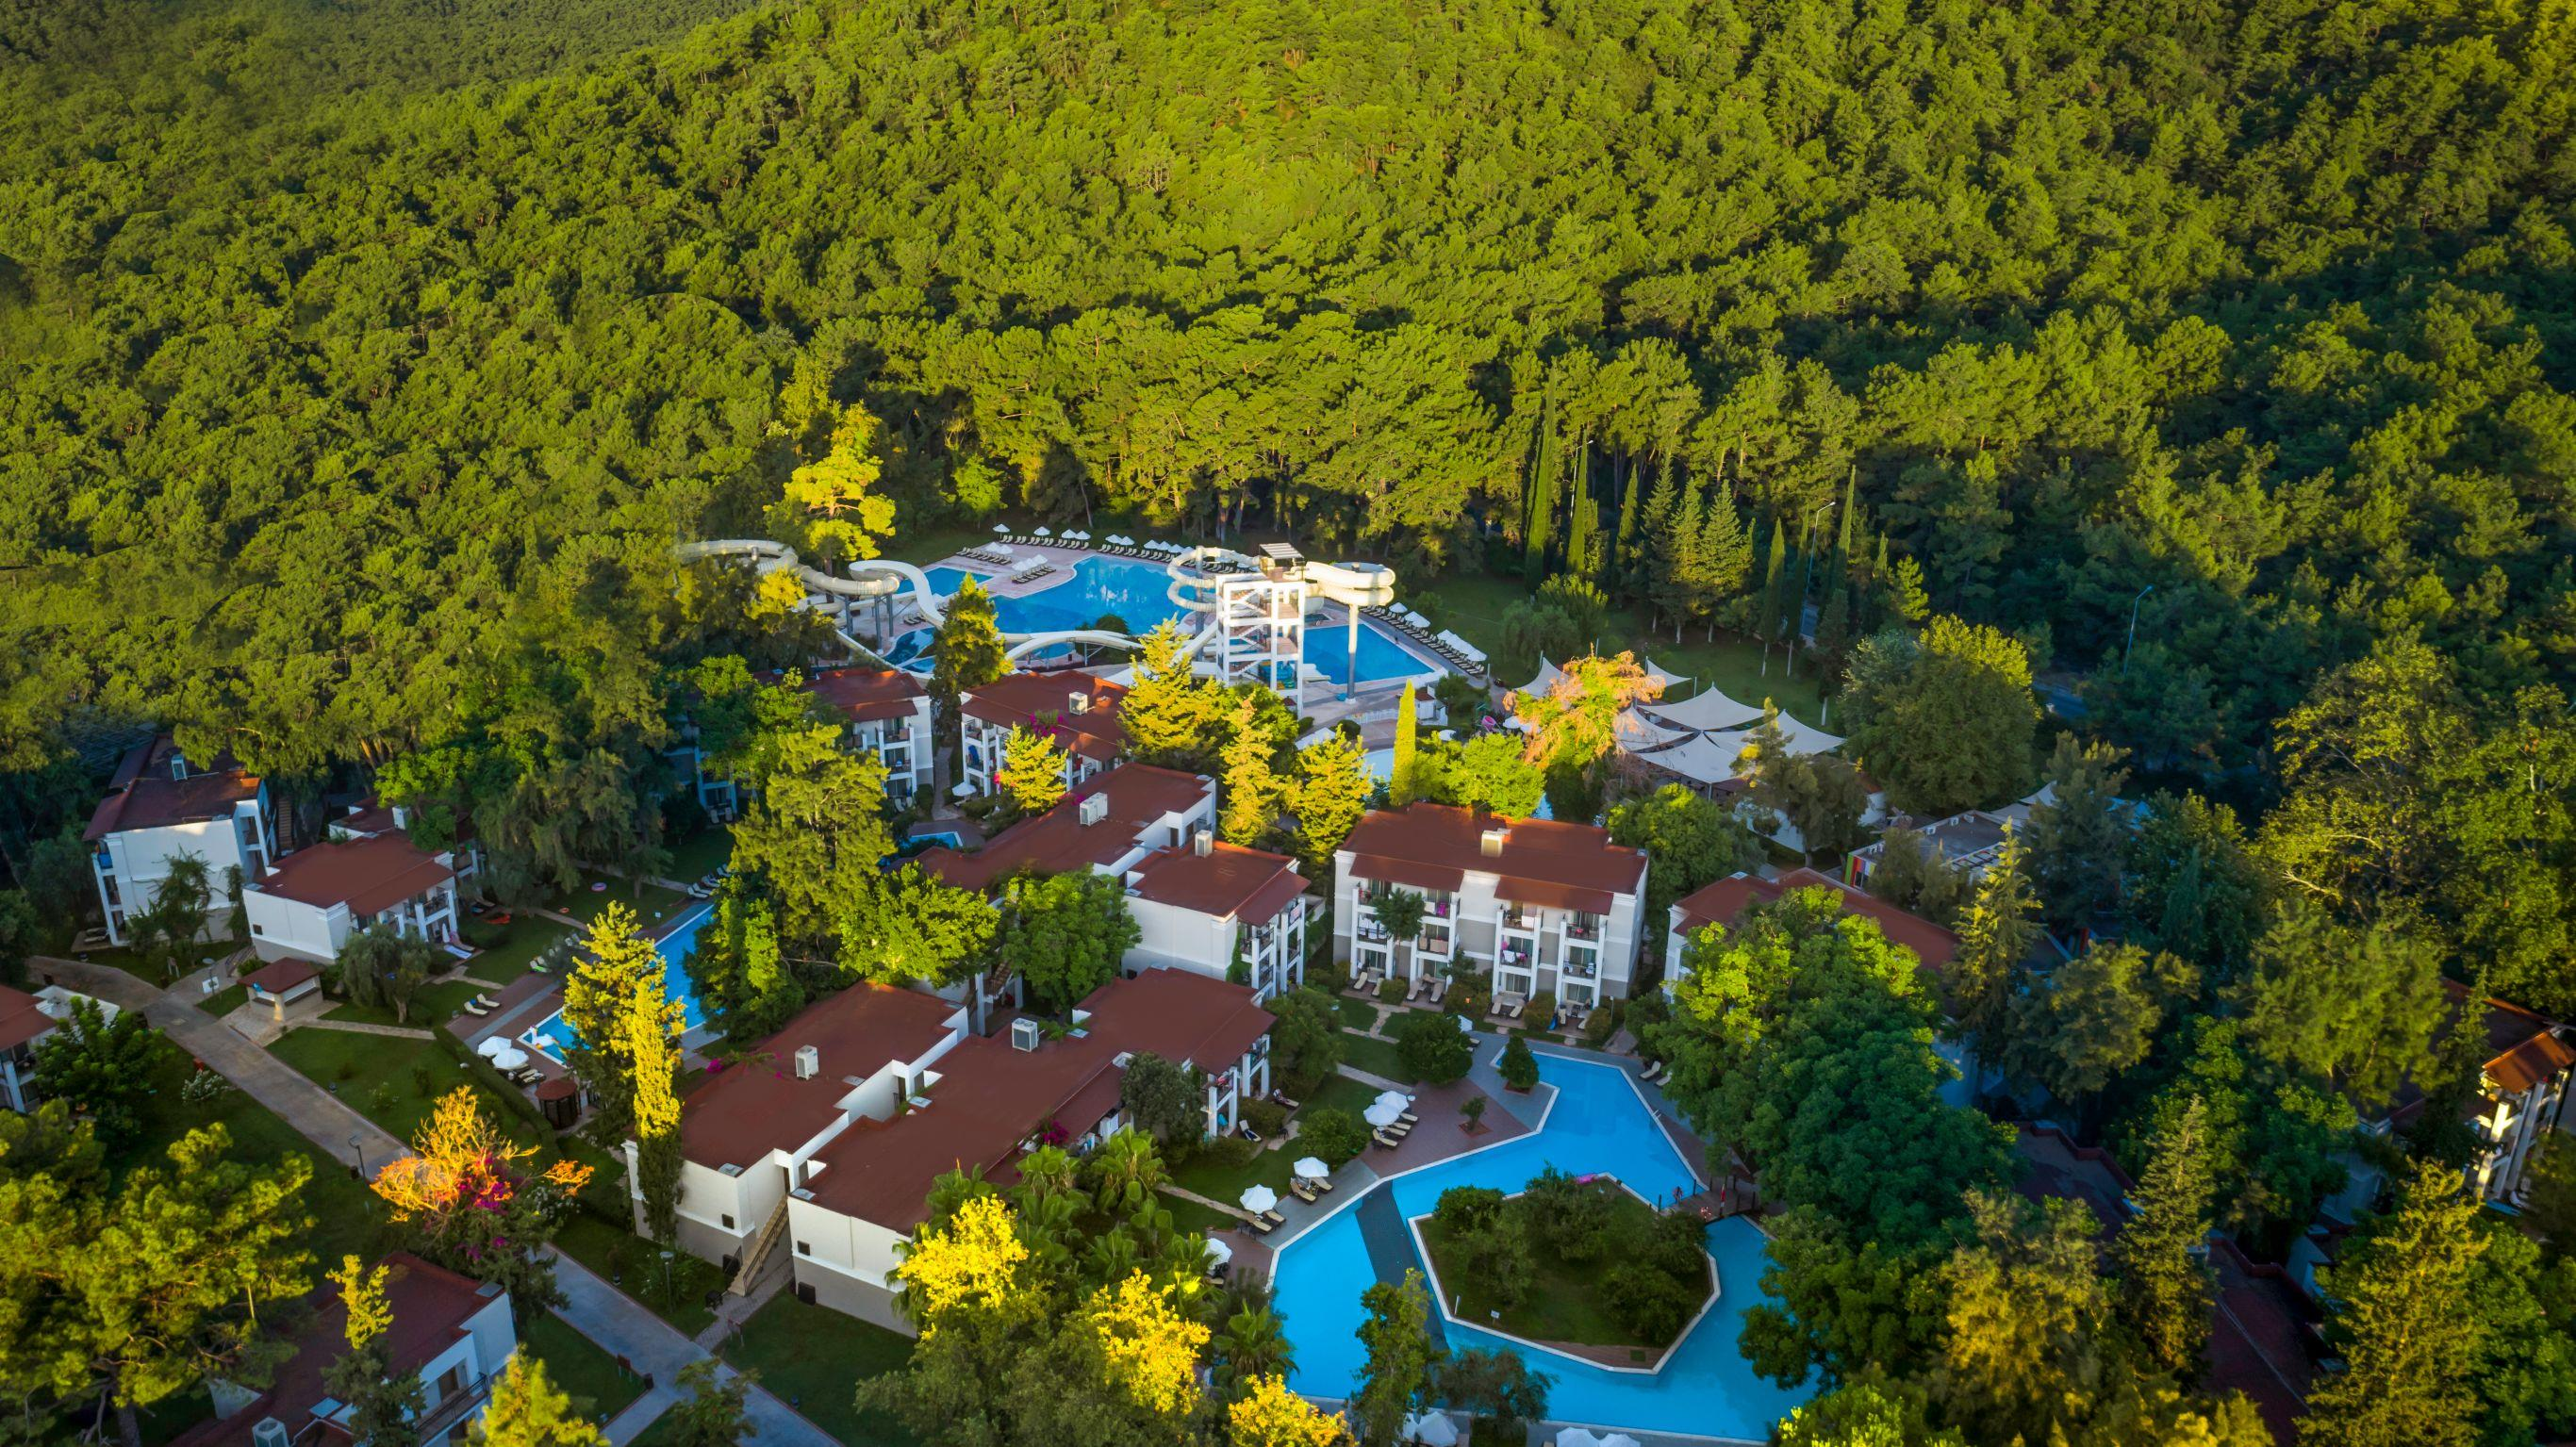 http://www.orextravel.sk/OREX/hotelphotos/sherwood-exclusive-kemer-general-0060.jpg